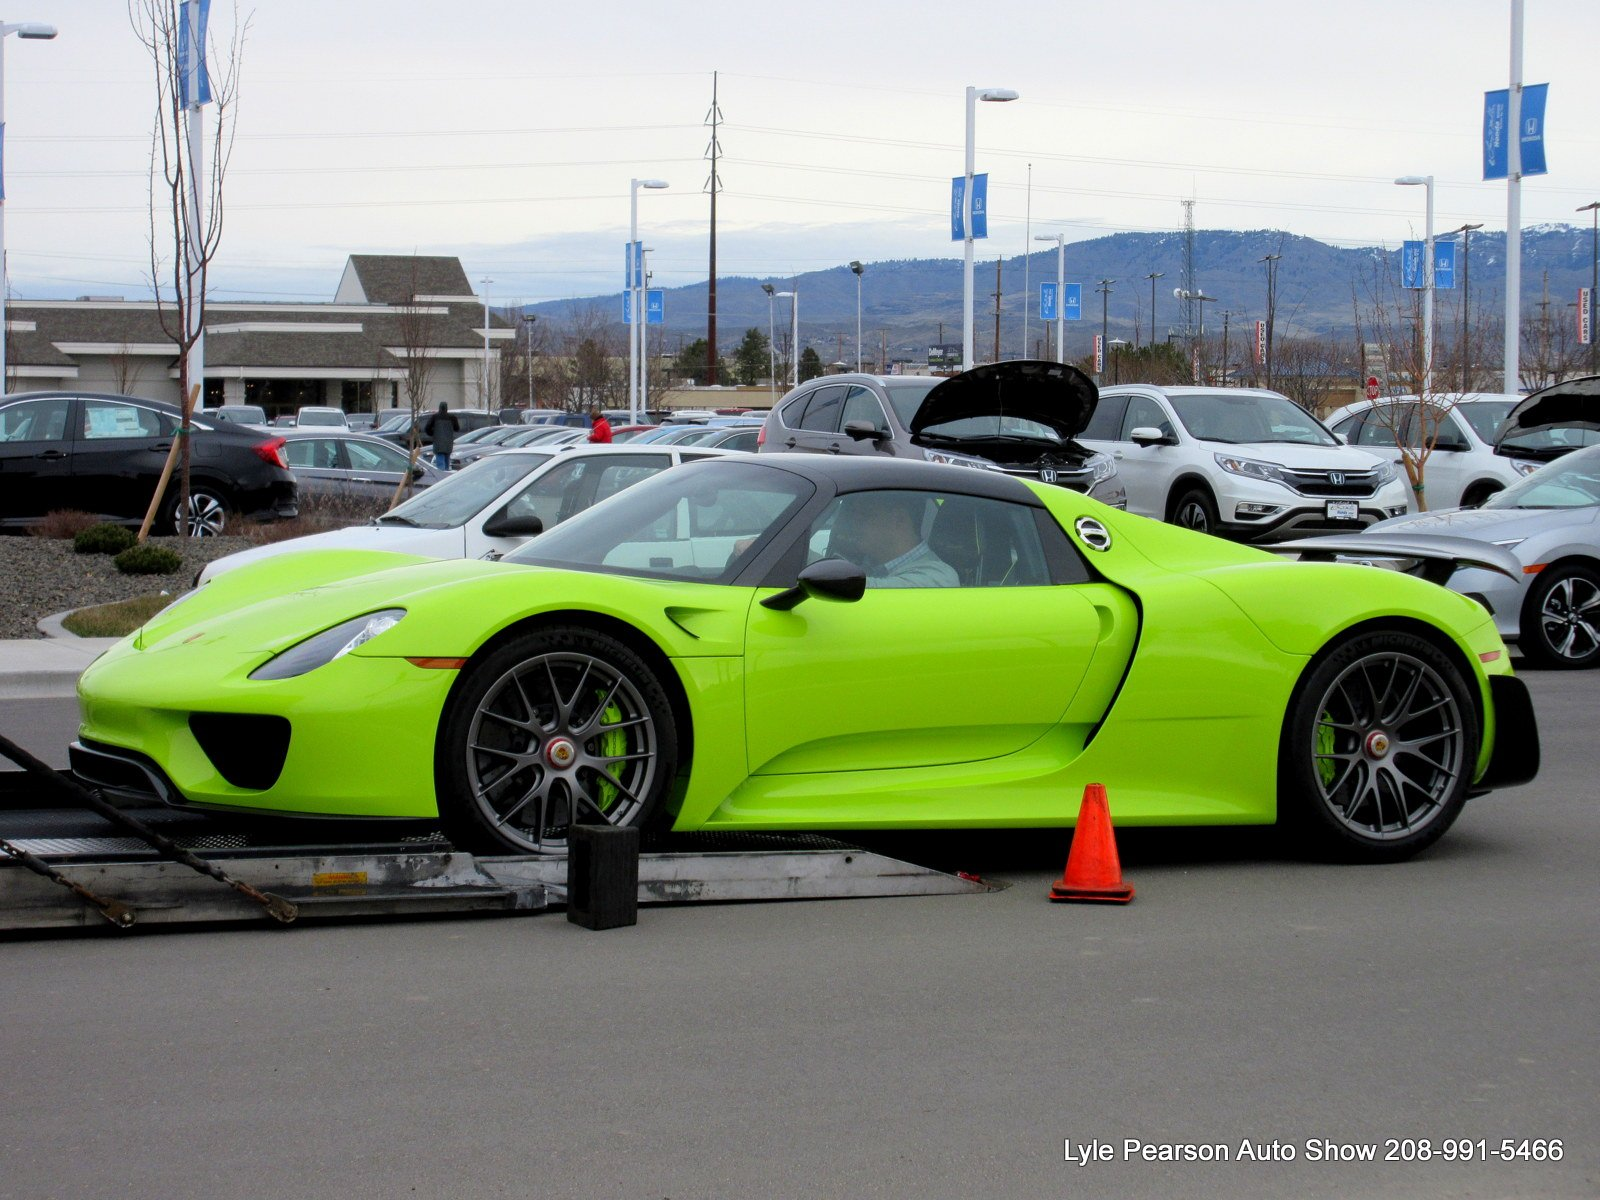 porsche of boise on twitter today we say goodbye to the acid green po. Black Bedroom Furniture Sets. Home Design Ideas